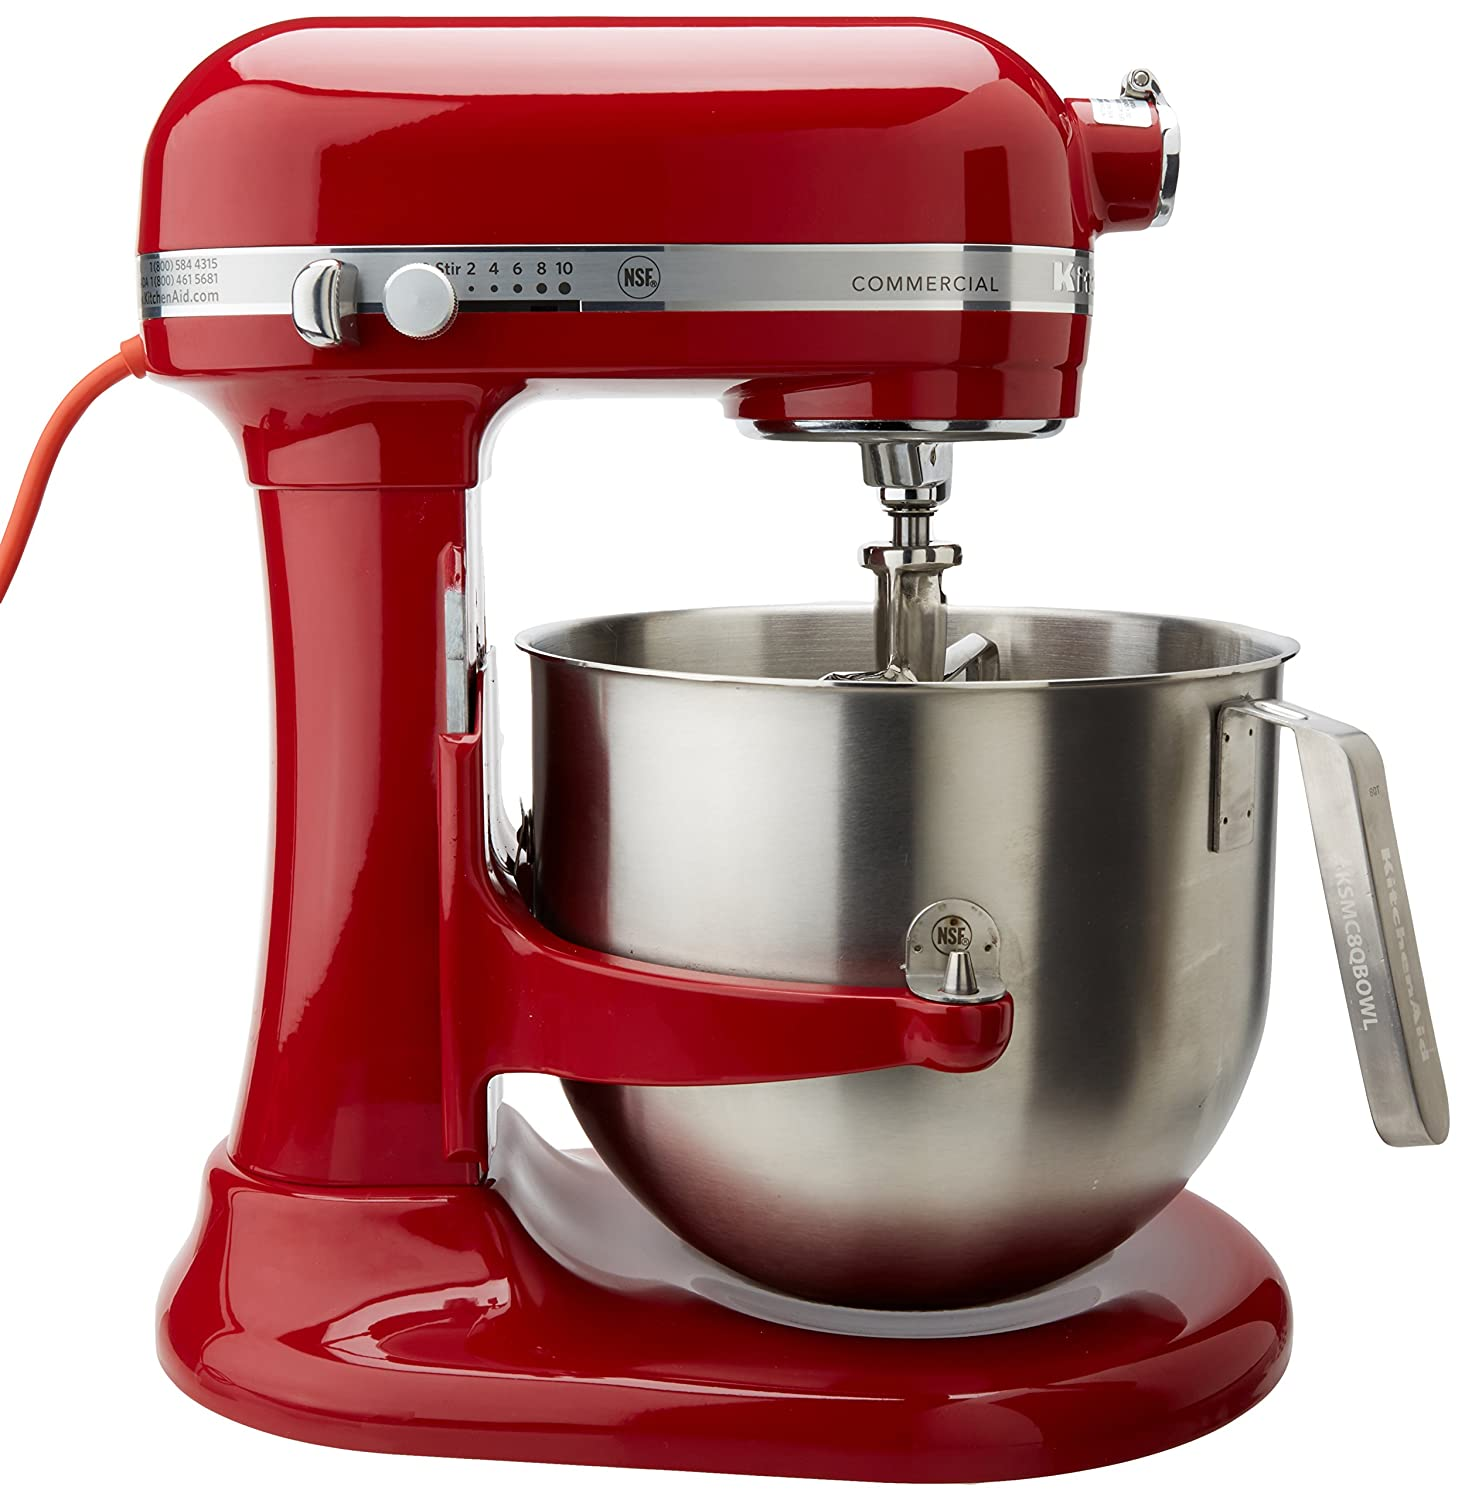 Amazon.com: KitchenAid (KSMC895ER) 8-Quart Stand Mixer with Bowl ...